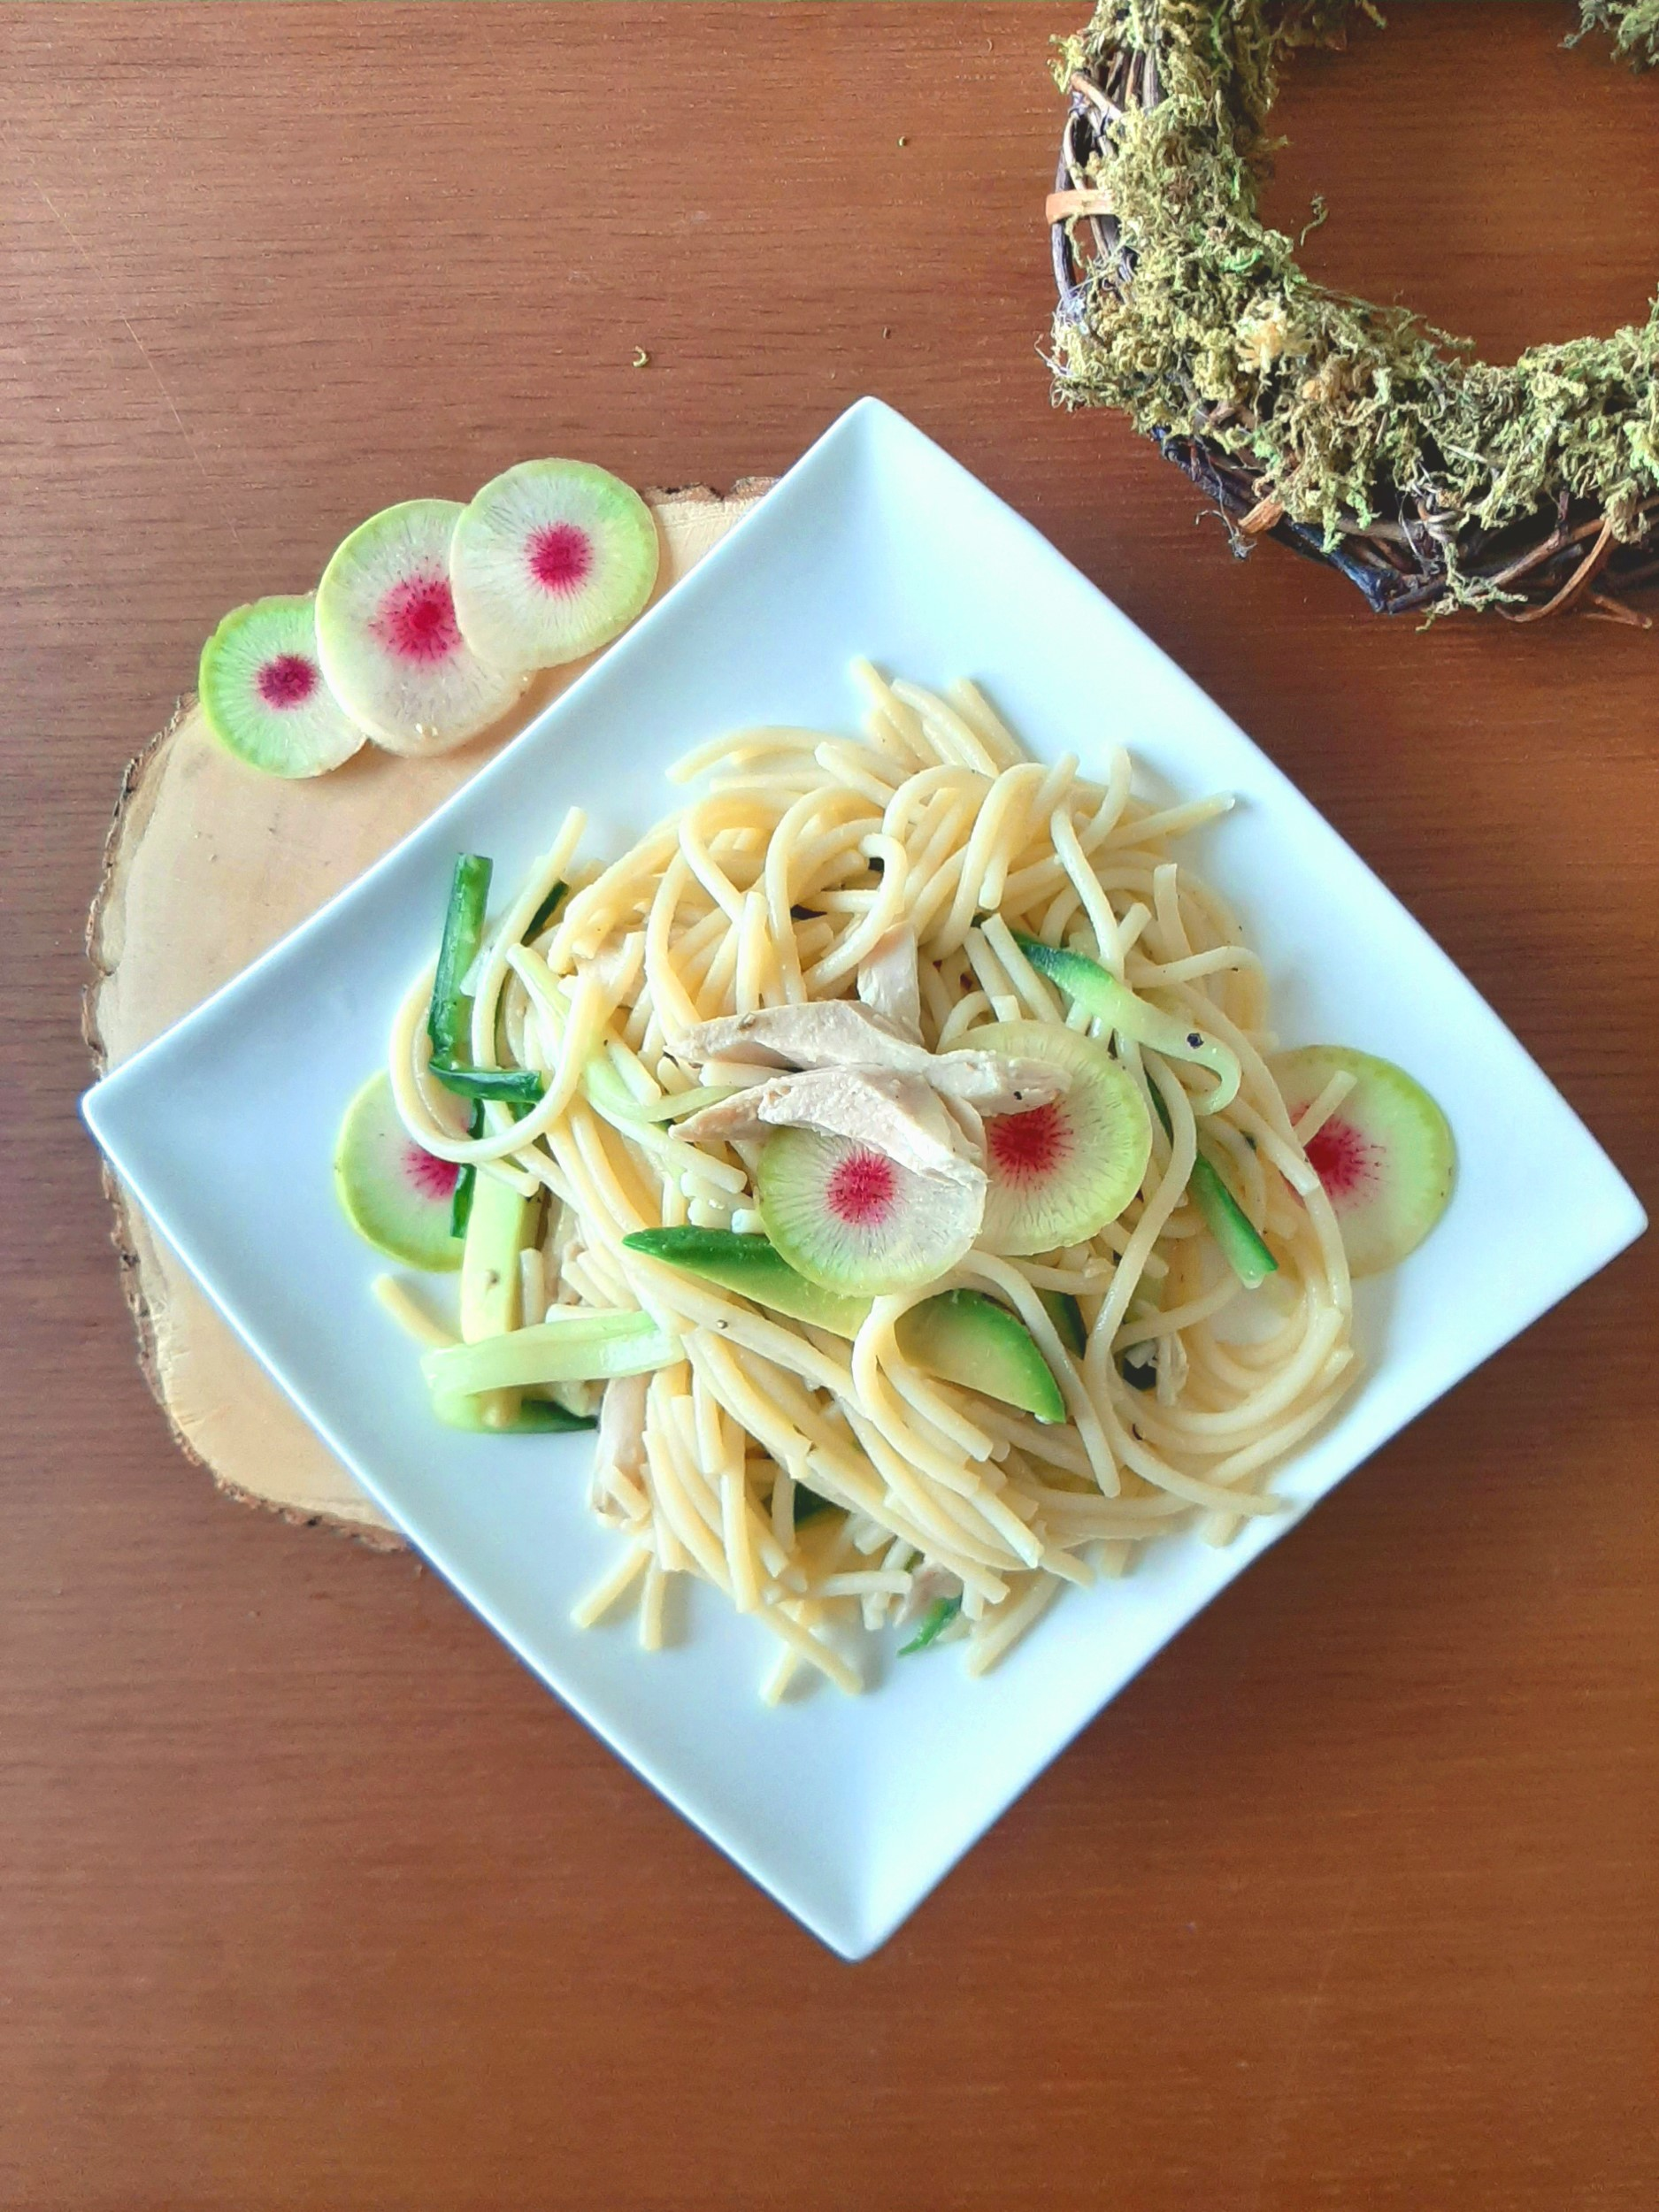 15-Min Healthy Green Pasta with Shredded Chicken